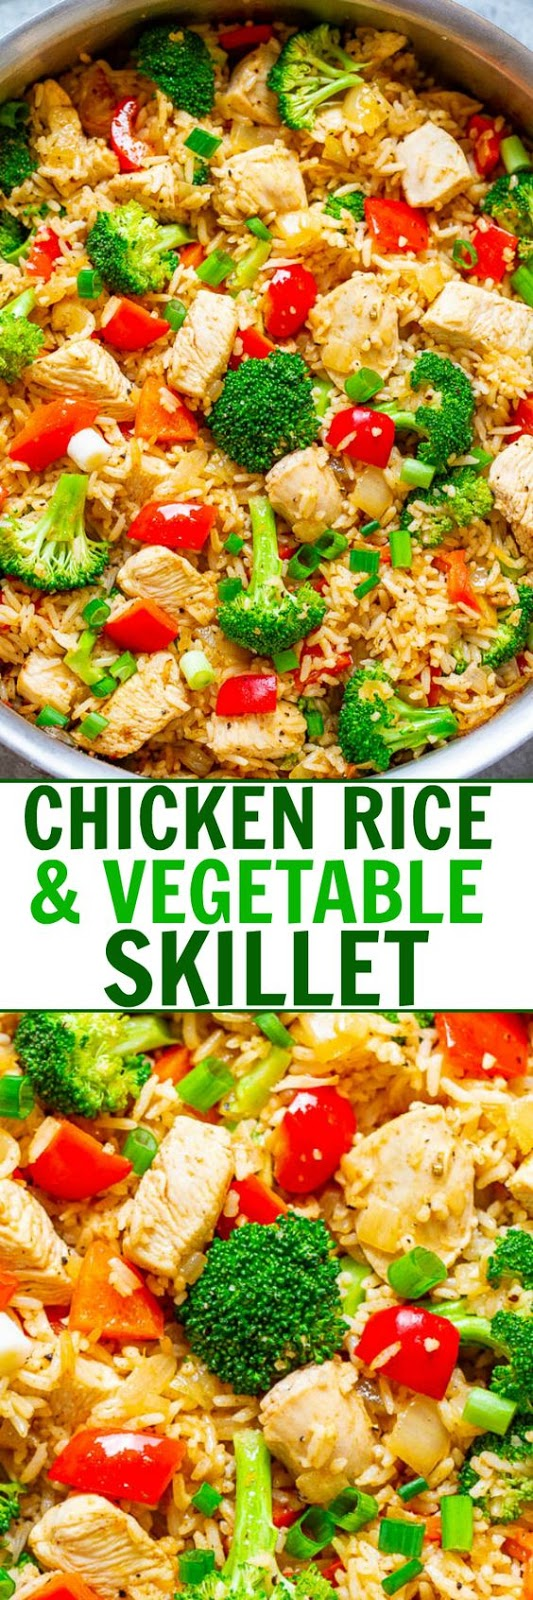 Delicious Chicken, Rice, and Vegetable Skillet